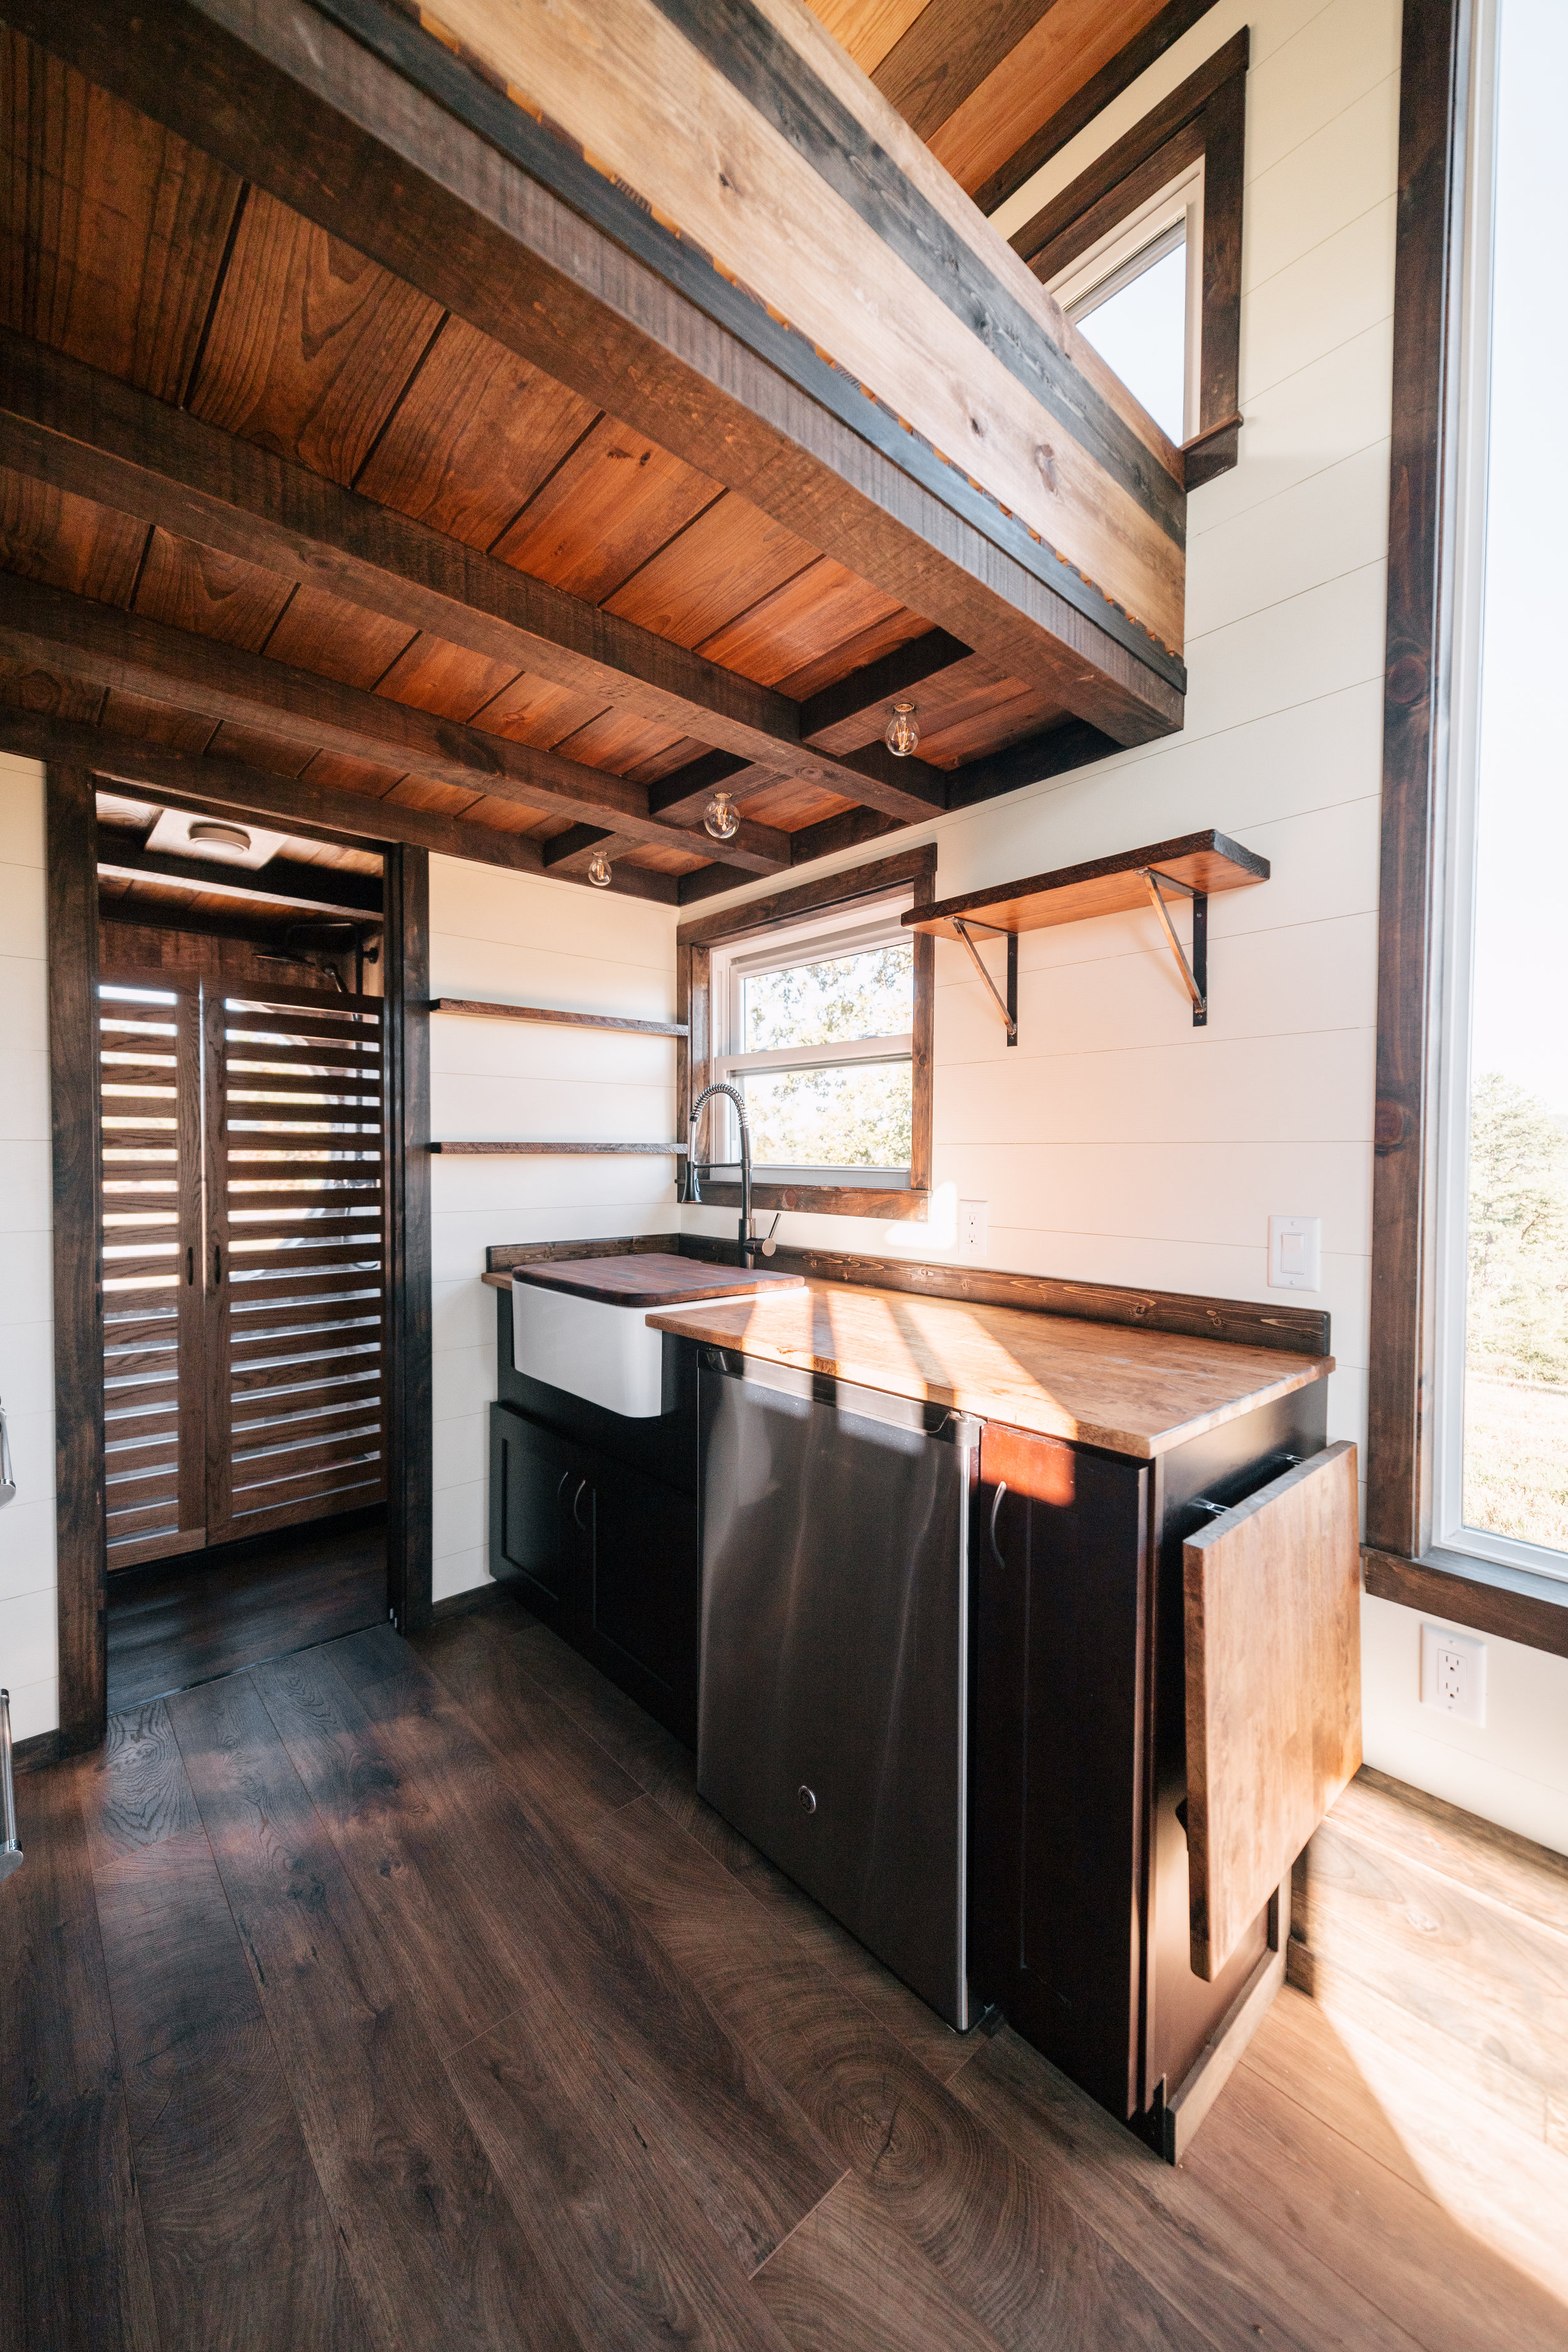 The Silhouette by Wind River Tiny Homes - fold down table, shaker style cabinets, open kitchen shelving, under cabinet fridge, farmhouse sink, butcher block